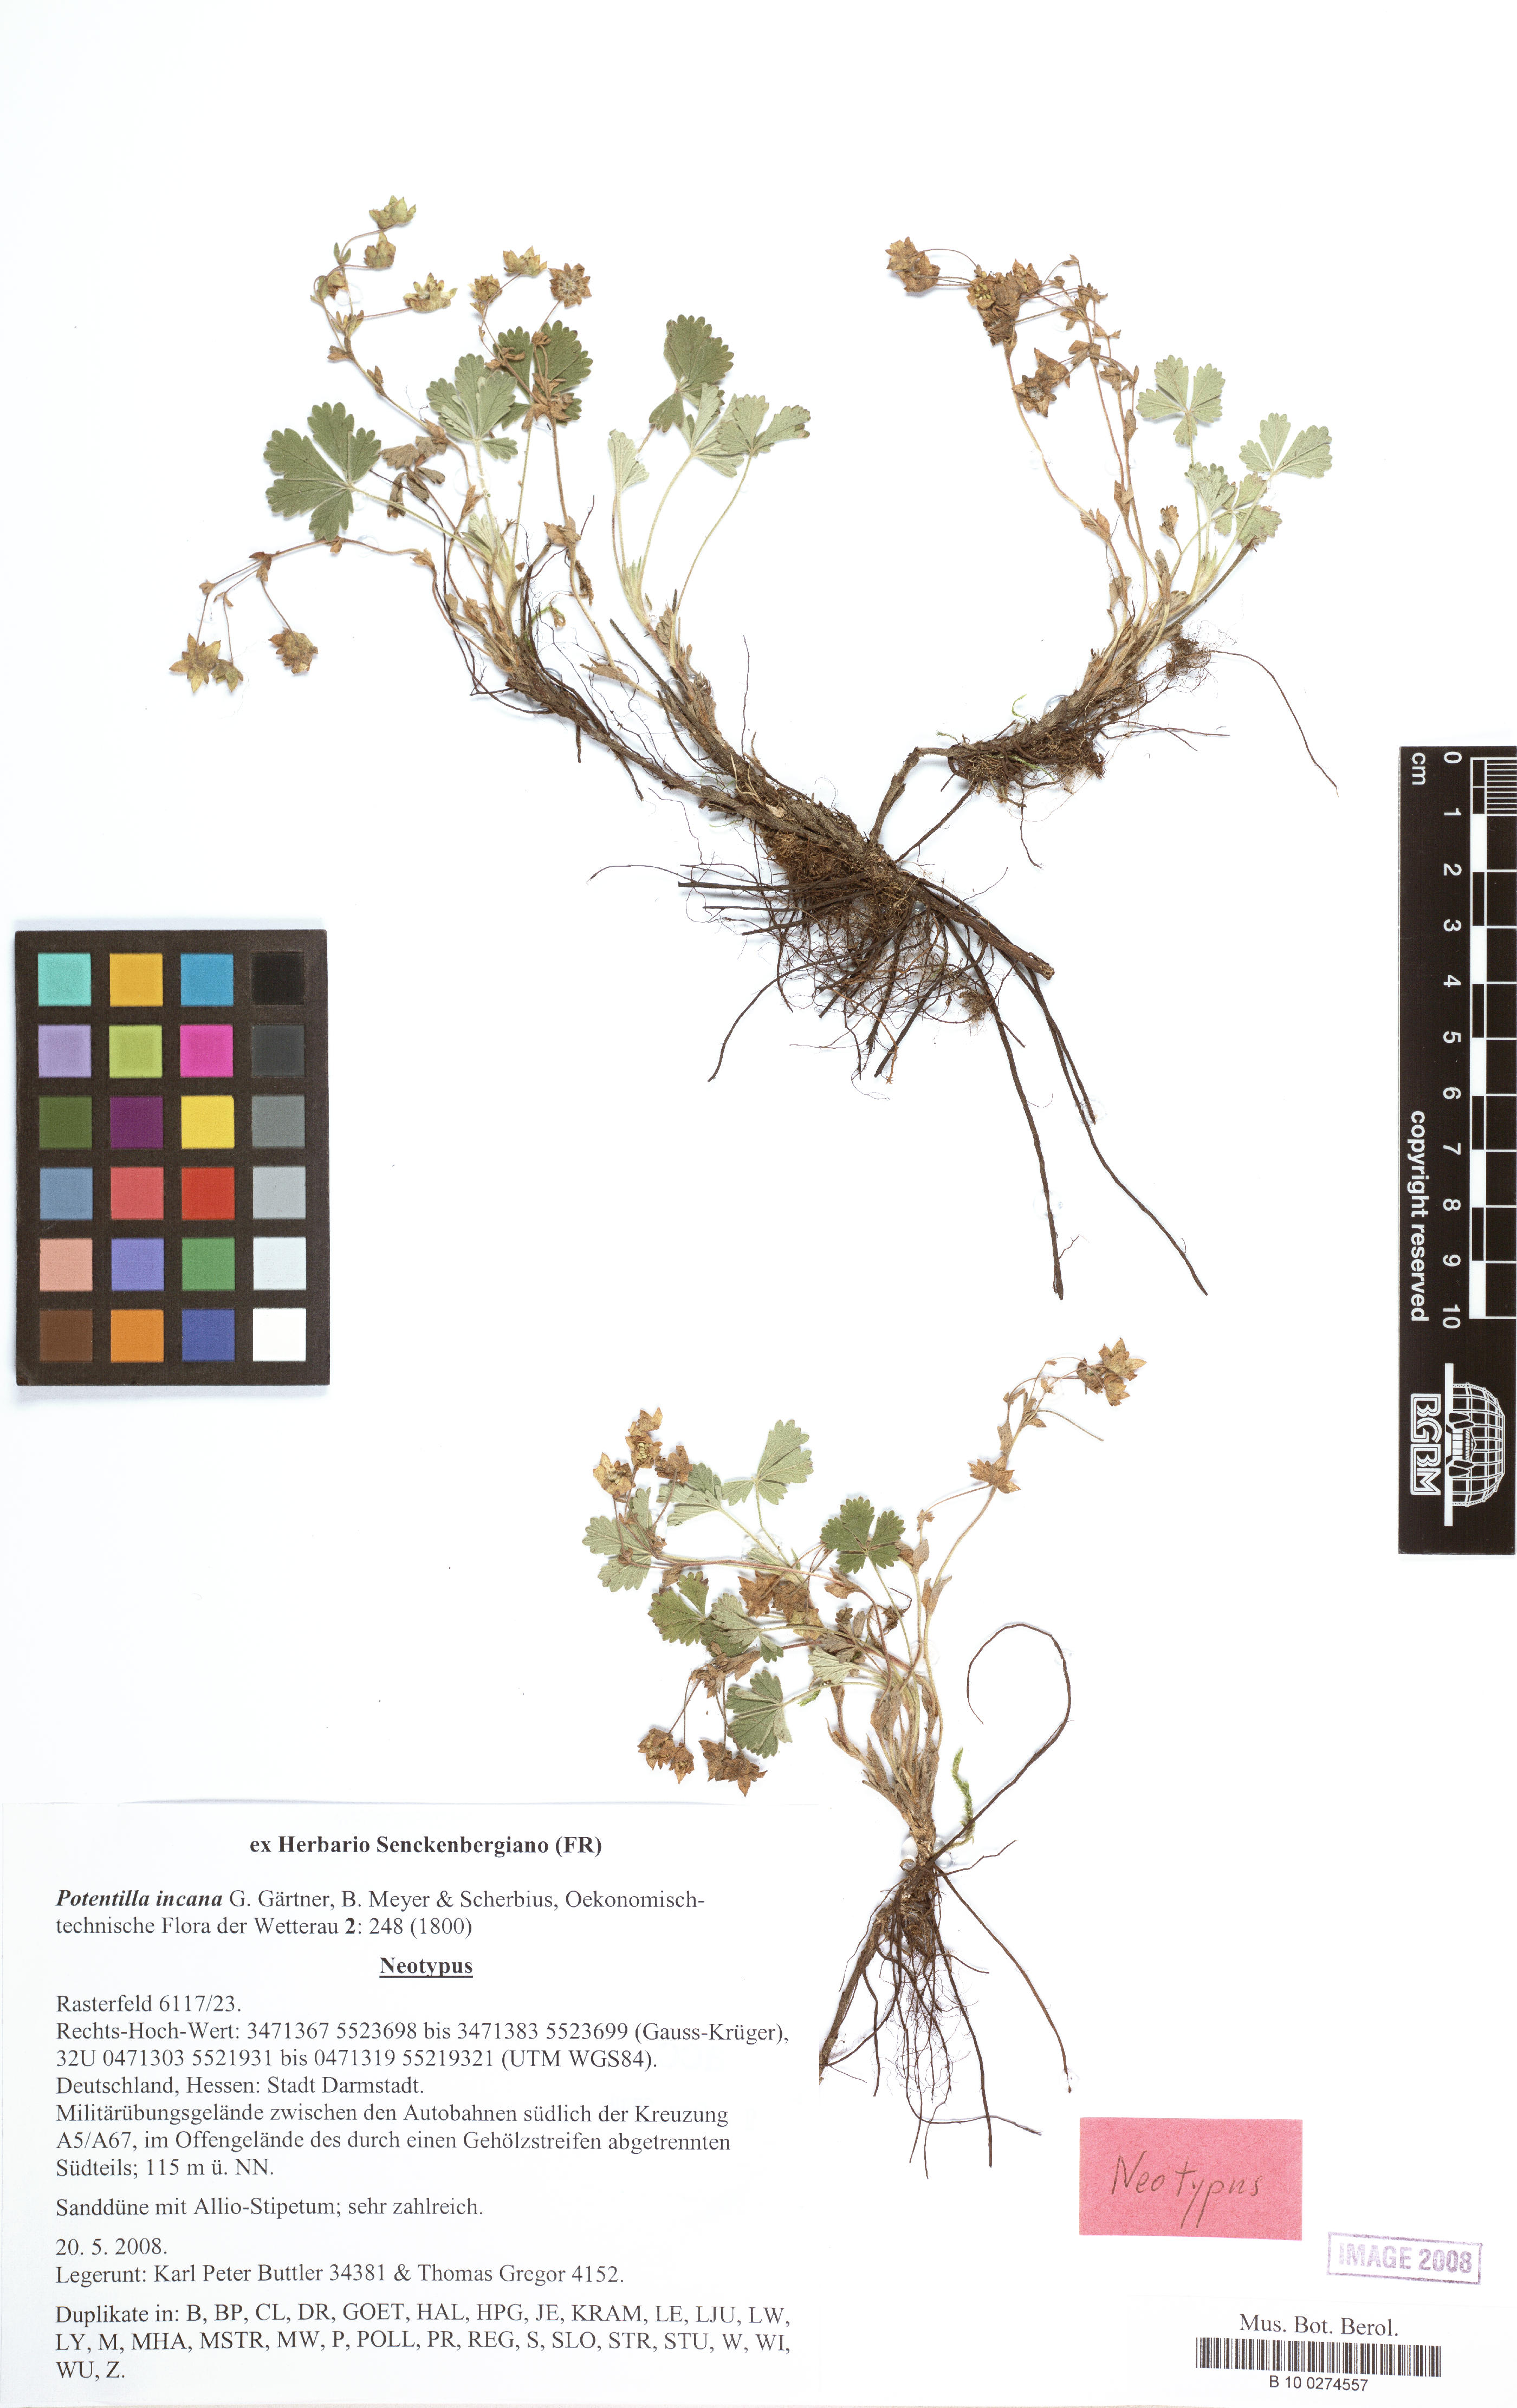 ©  Röpert, D. (Ed.) 2000- (continuously updated): Digital specimen images at the Herbarium Berolinense. - Published on the Internet http://ww2.bgbm.org/herbarium/ (Barcode: B 10 0274557 / ImageId: 284578) [accessed 24-Dec-12].<br>